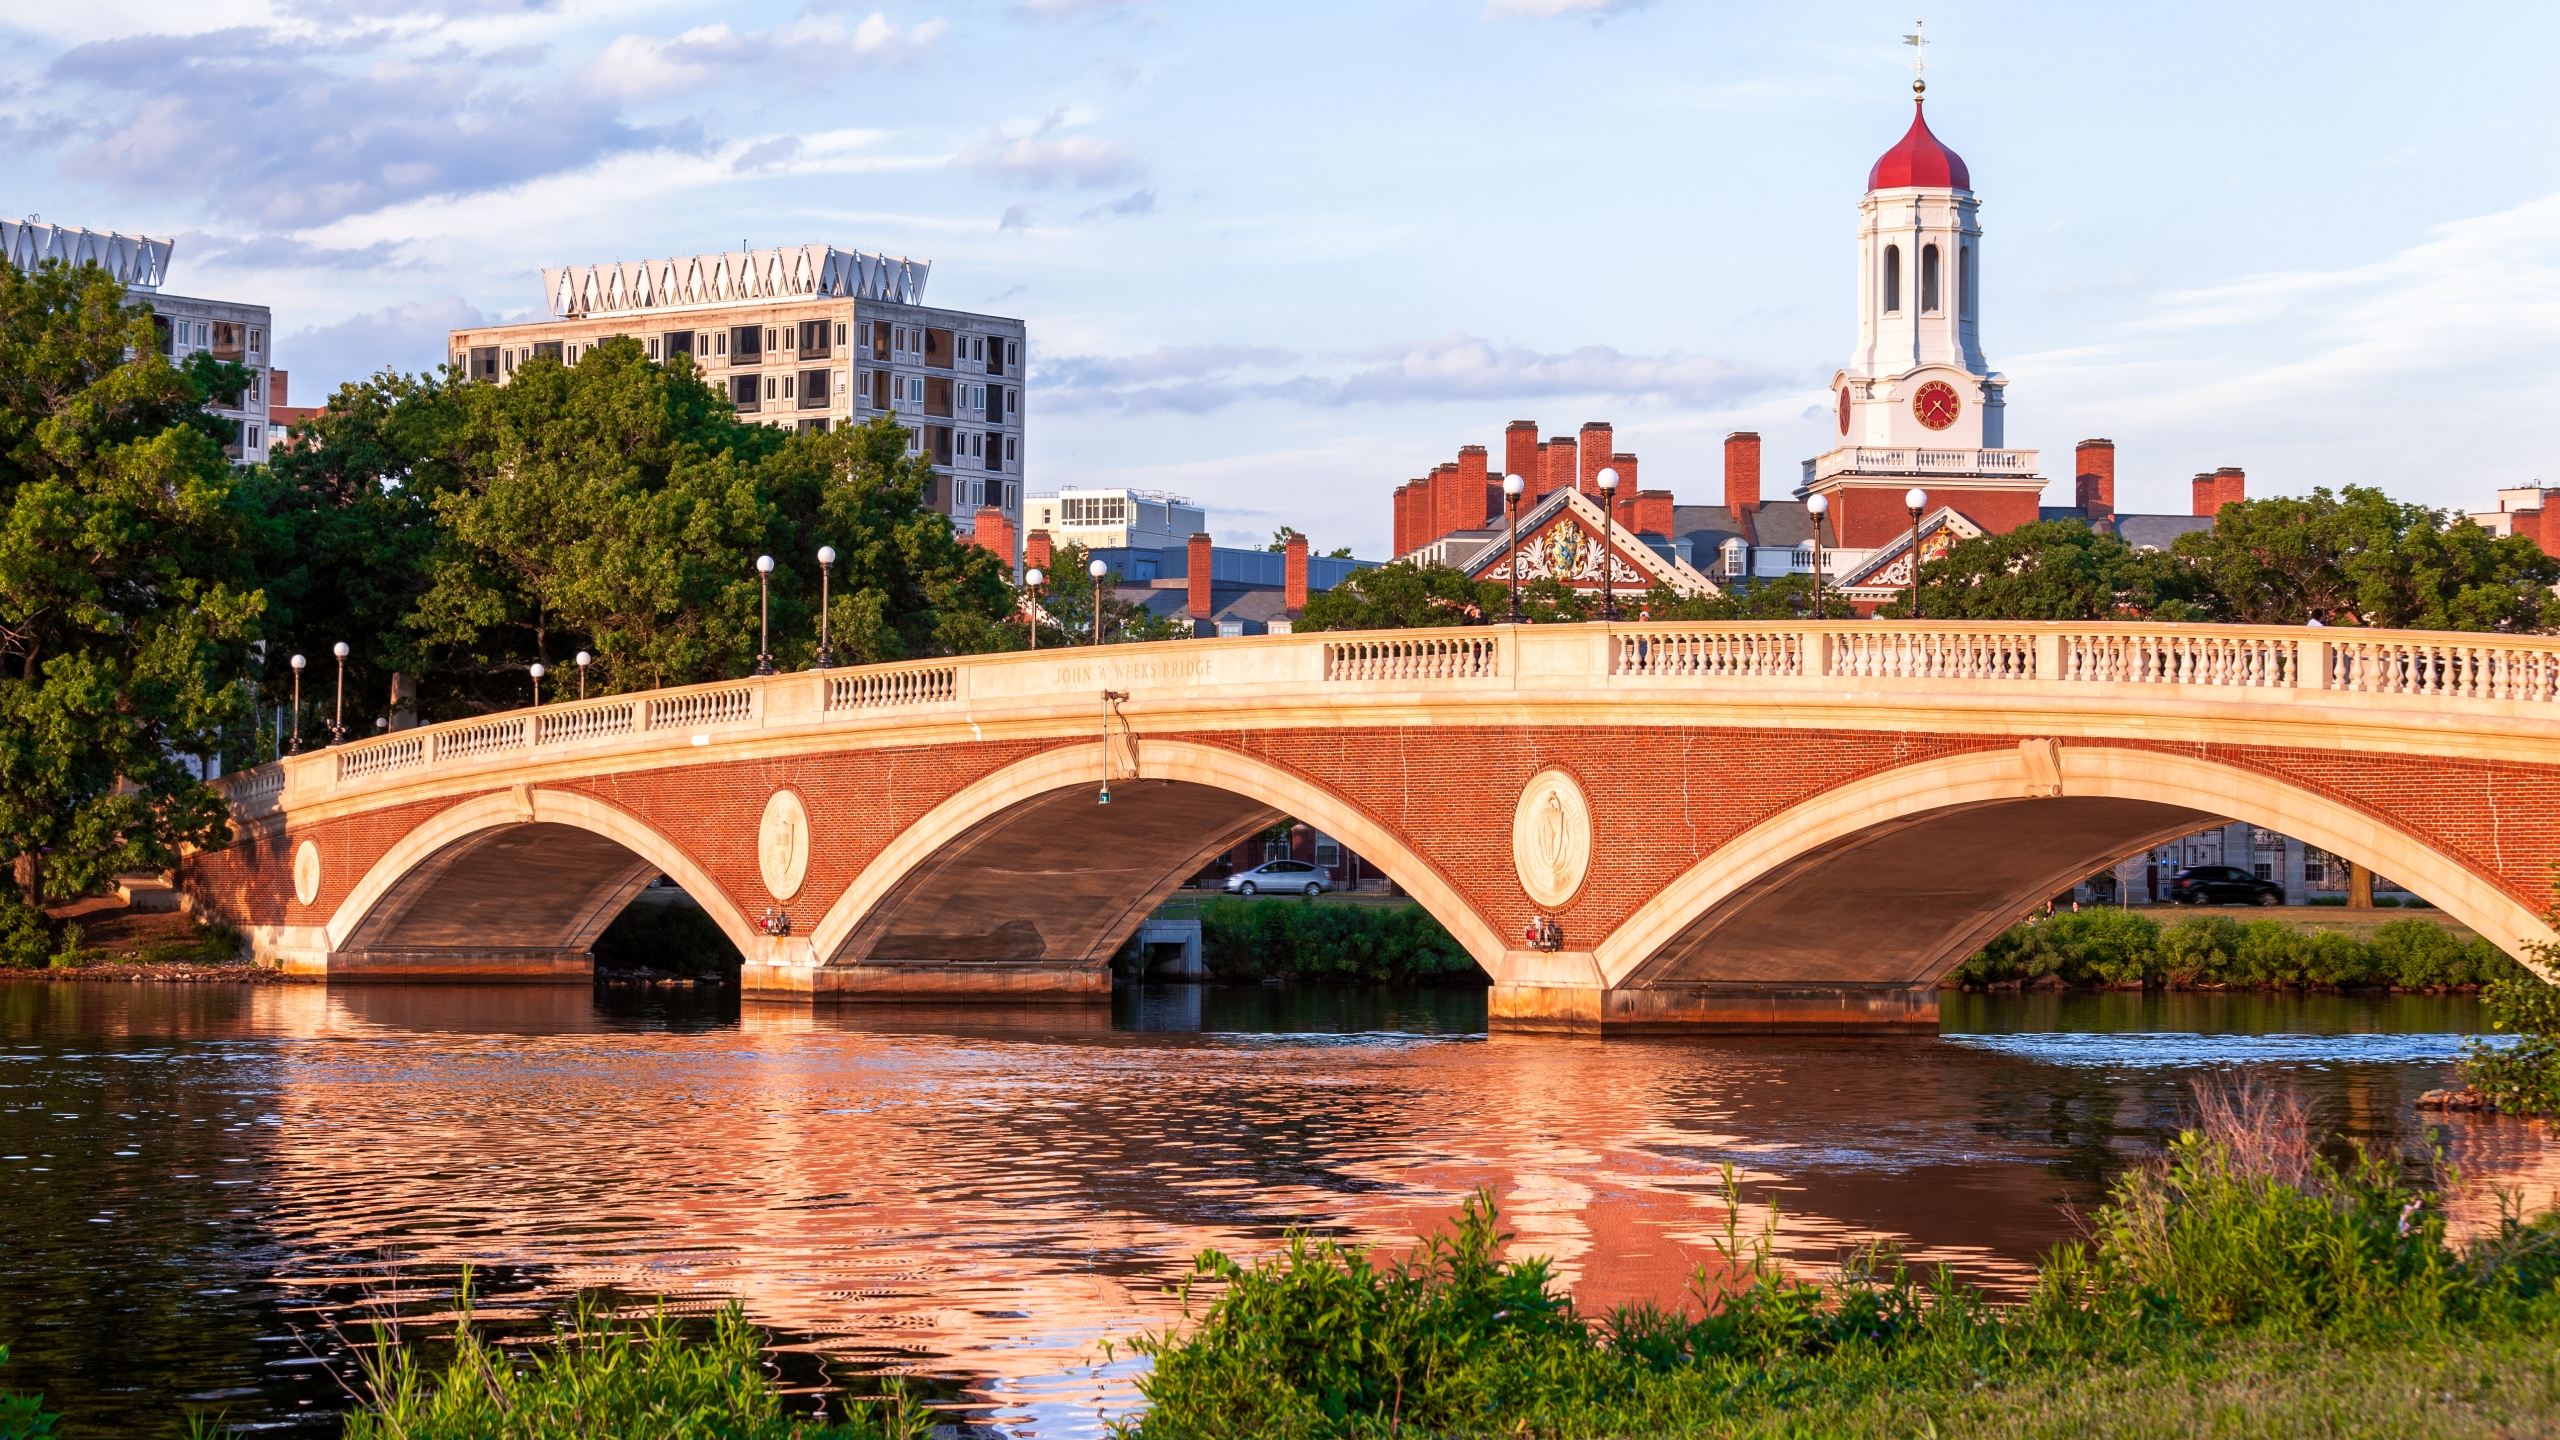 The Harvard University campus is seen in this undated photo. (Credit: Getty Images)